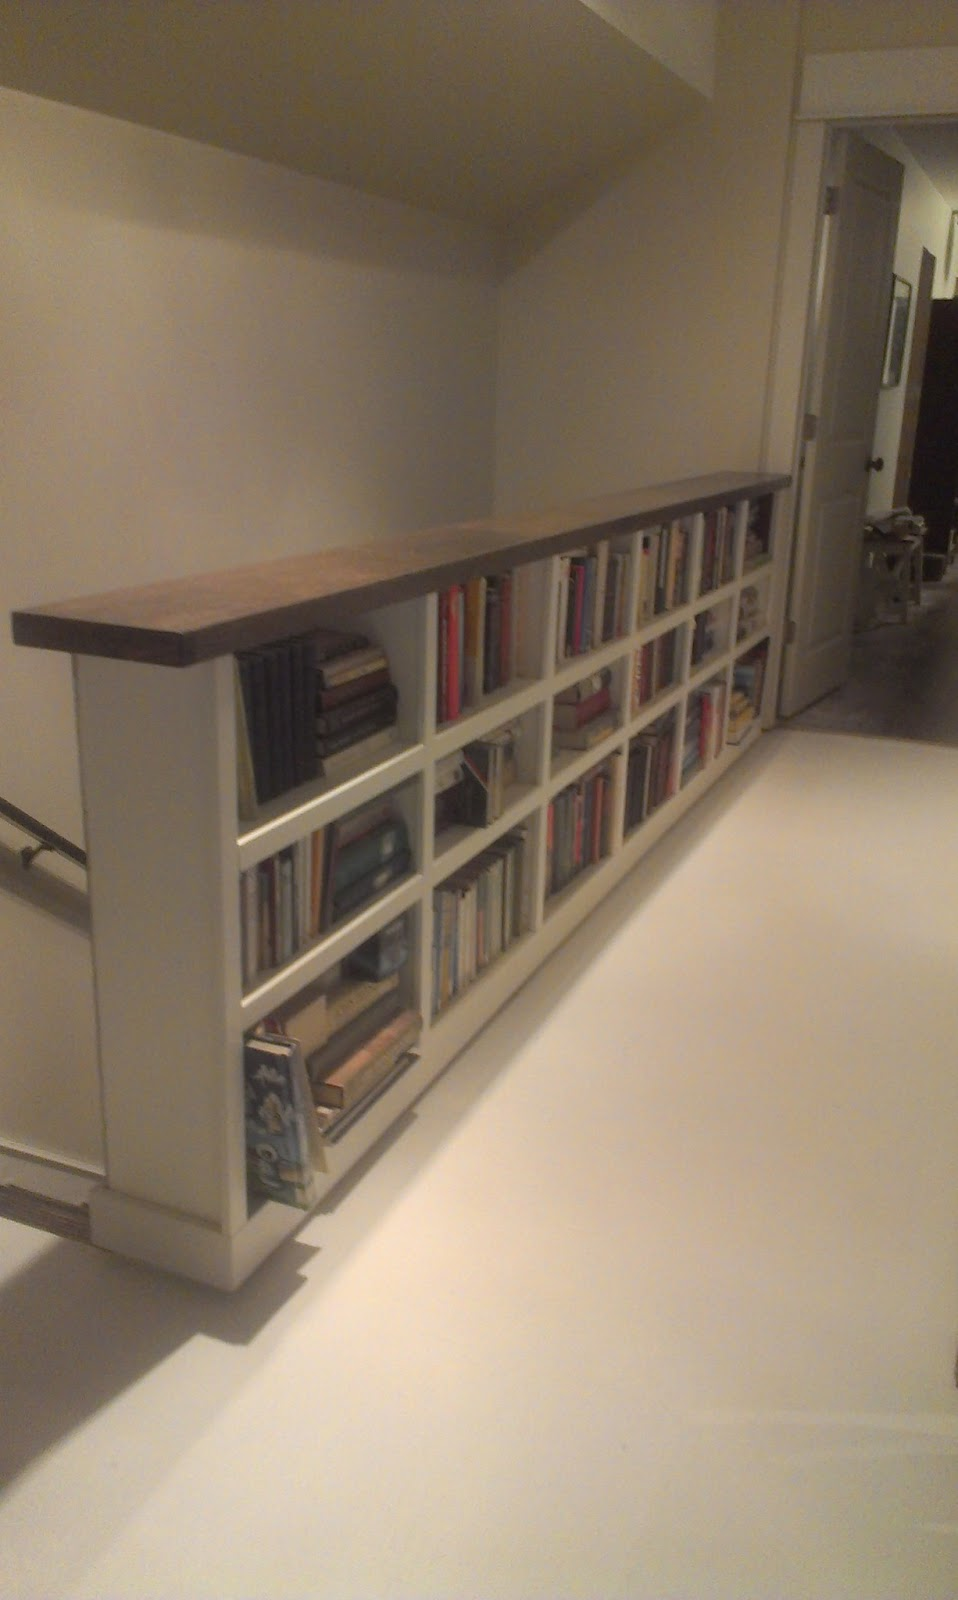 Bookcase Stairs Elephant Buffet: How To Keep From Falling Down A Staircase